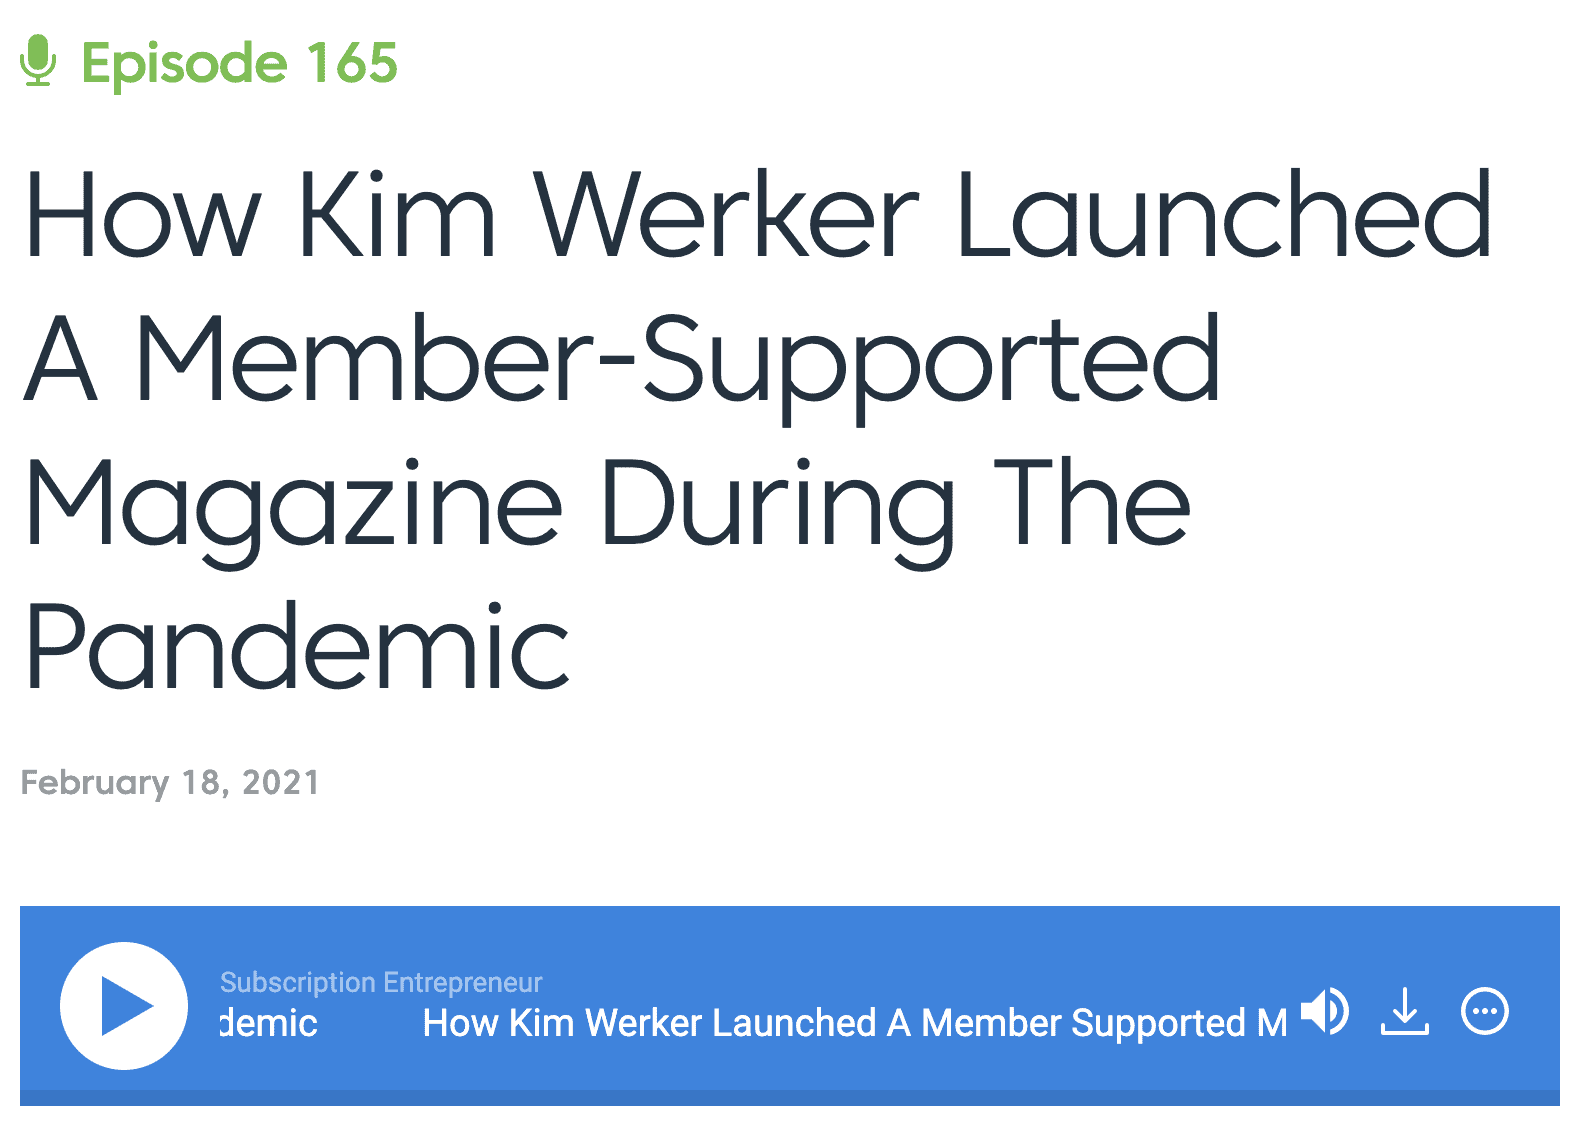 Screenshot of podcast title: How Kim Werker Launched a Member-Supported Magazine During the Pandemic